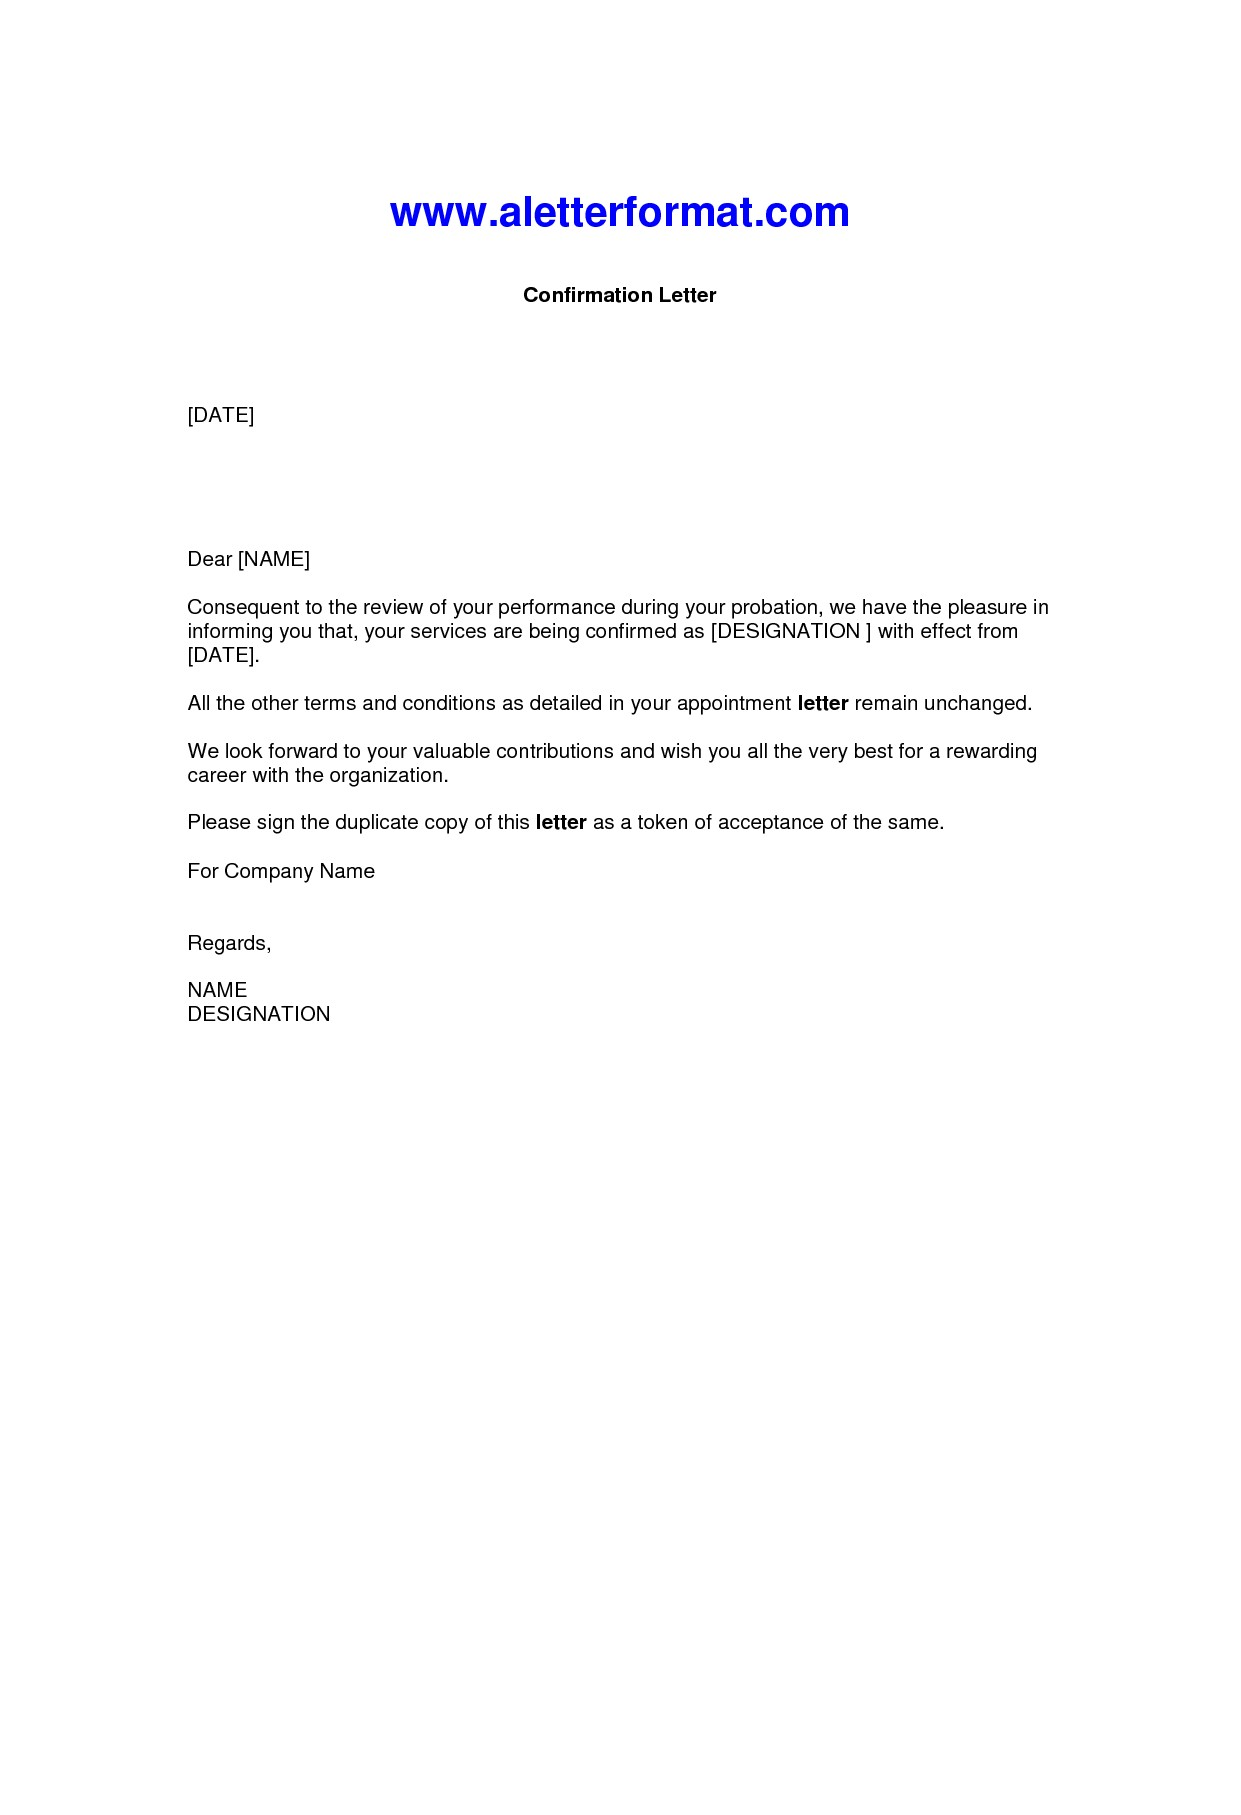 letter confirmation employment